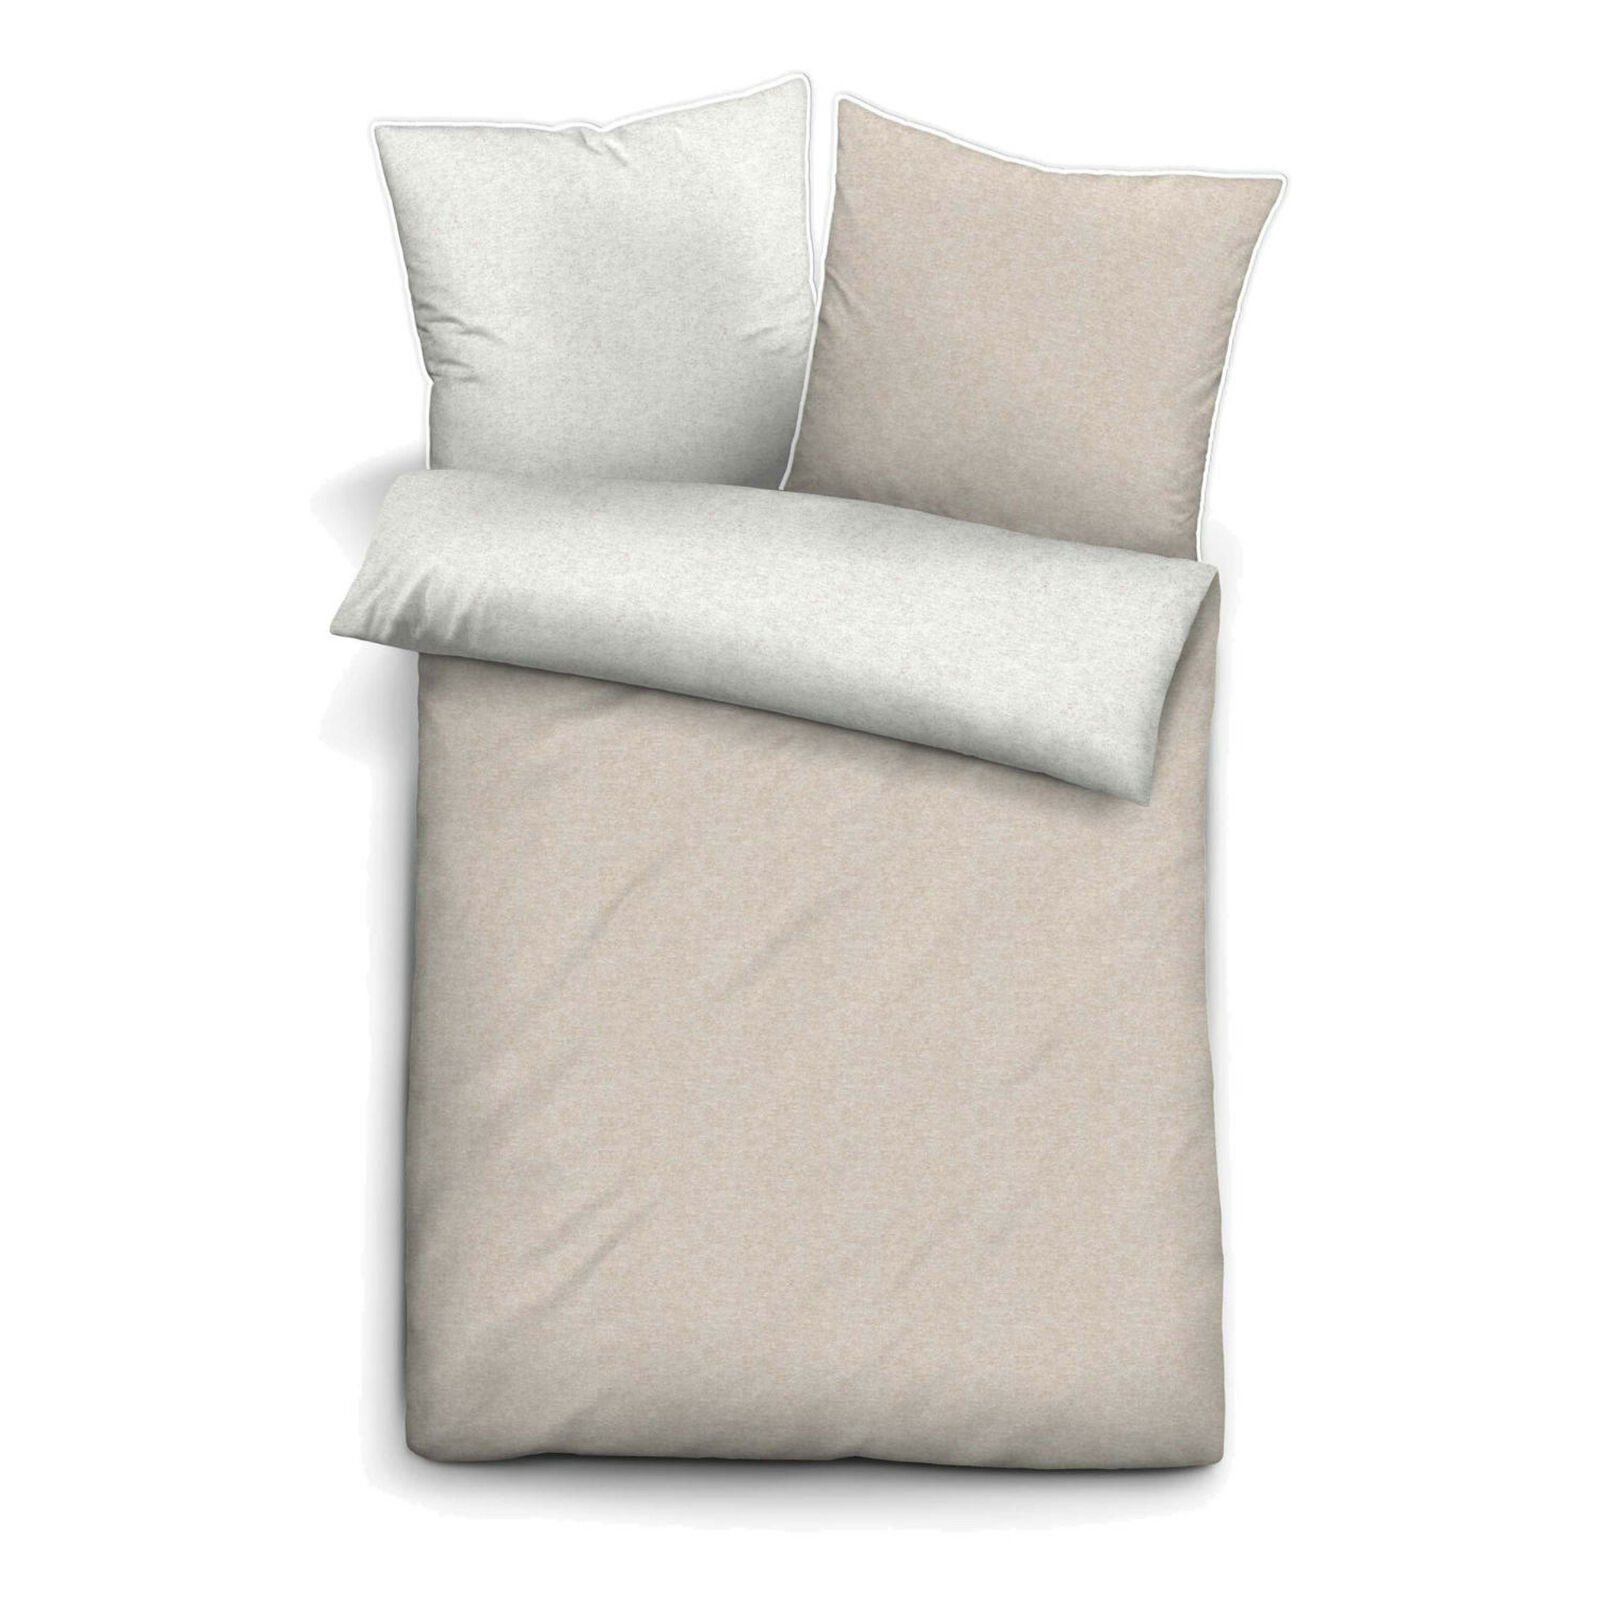 Bedding Flanell Bettwäsche Melange Castell Sterne Graphit Grau Baumwolle Warm 135x200 Cm Home Furniture Diy Breadcrumbs Ie